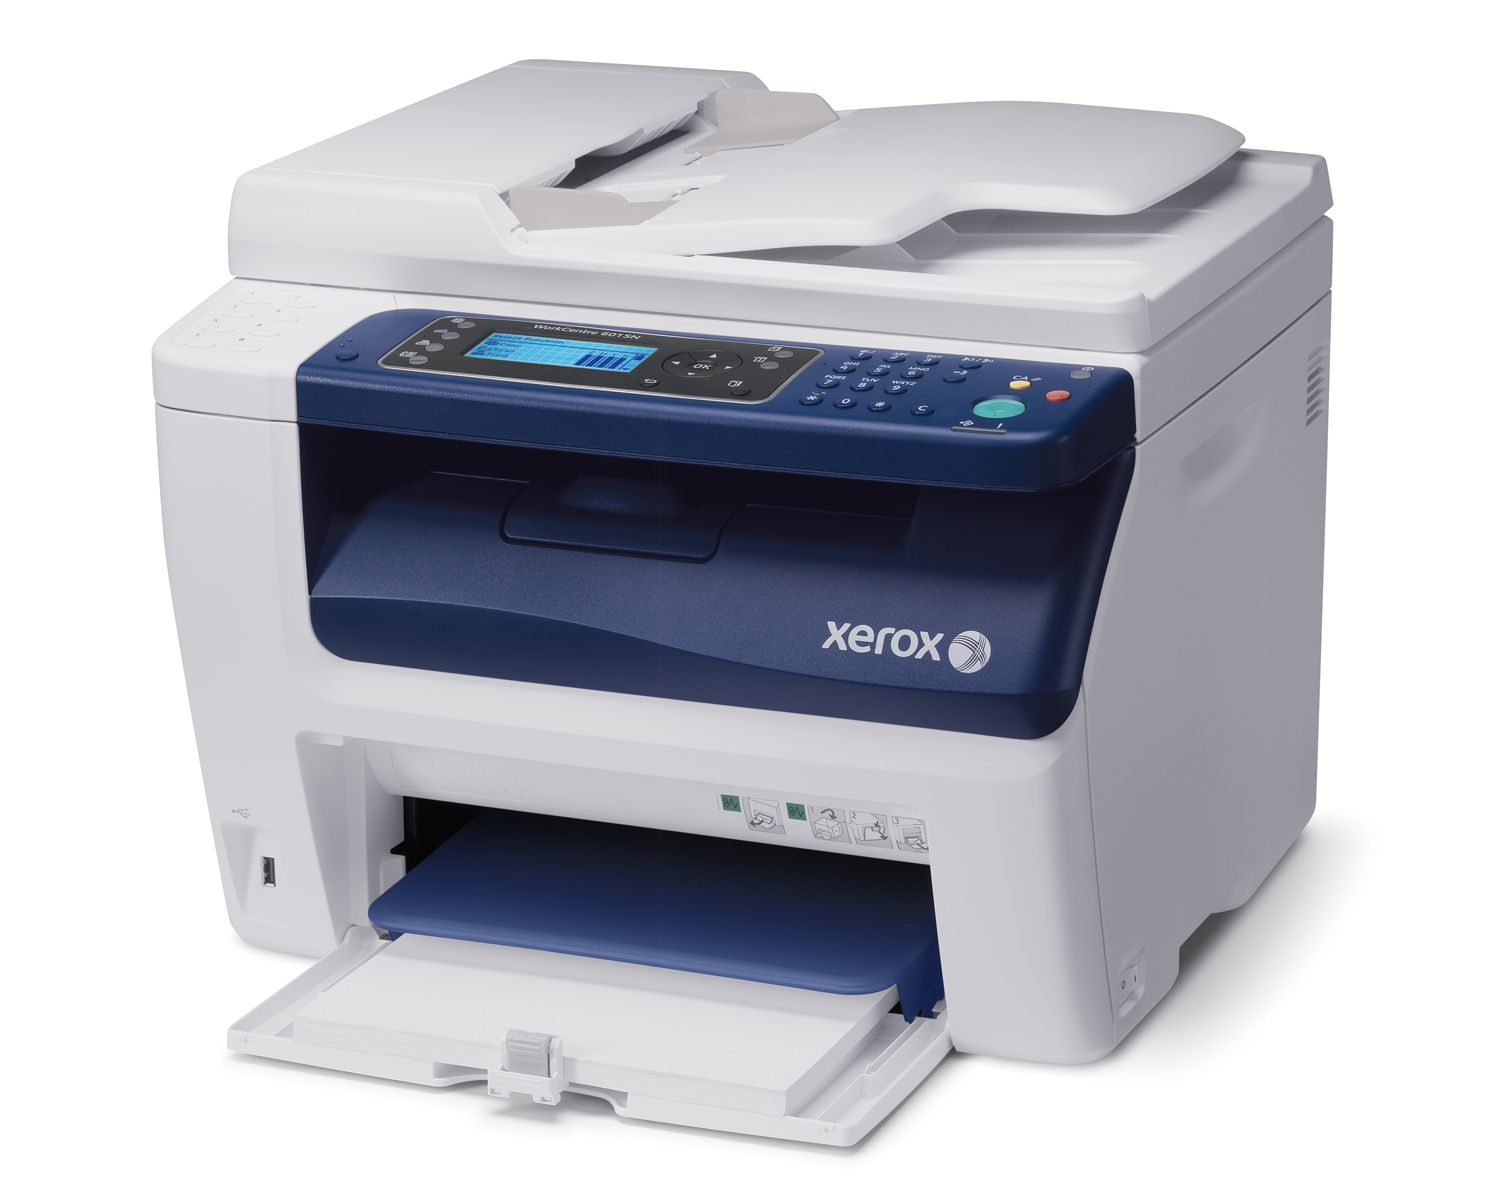 New Xerox Laser Led Wifi Printing Home Countdown 12 6 2012